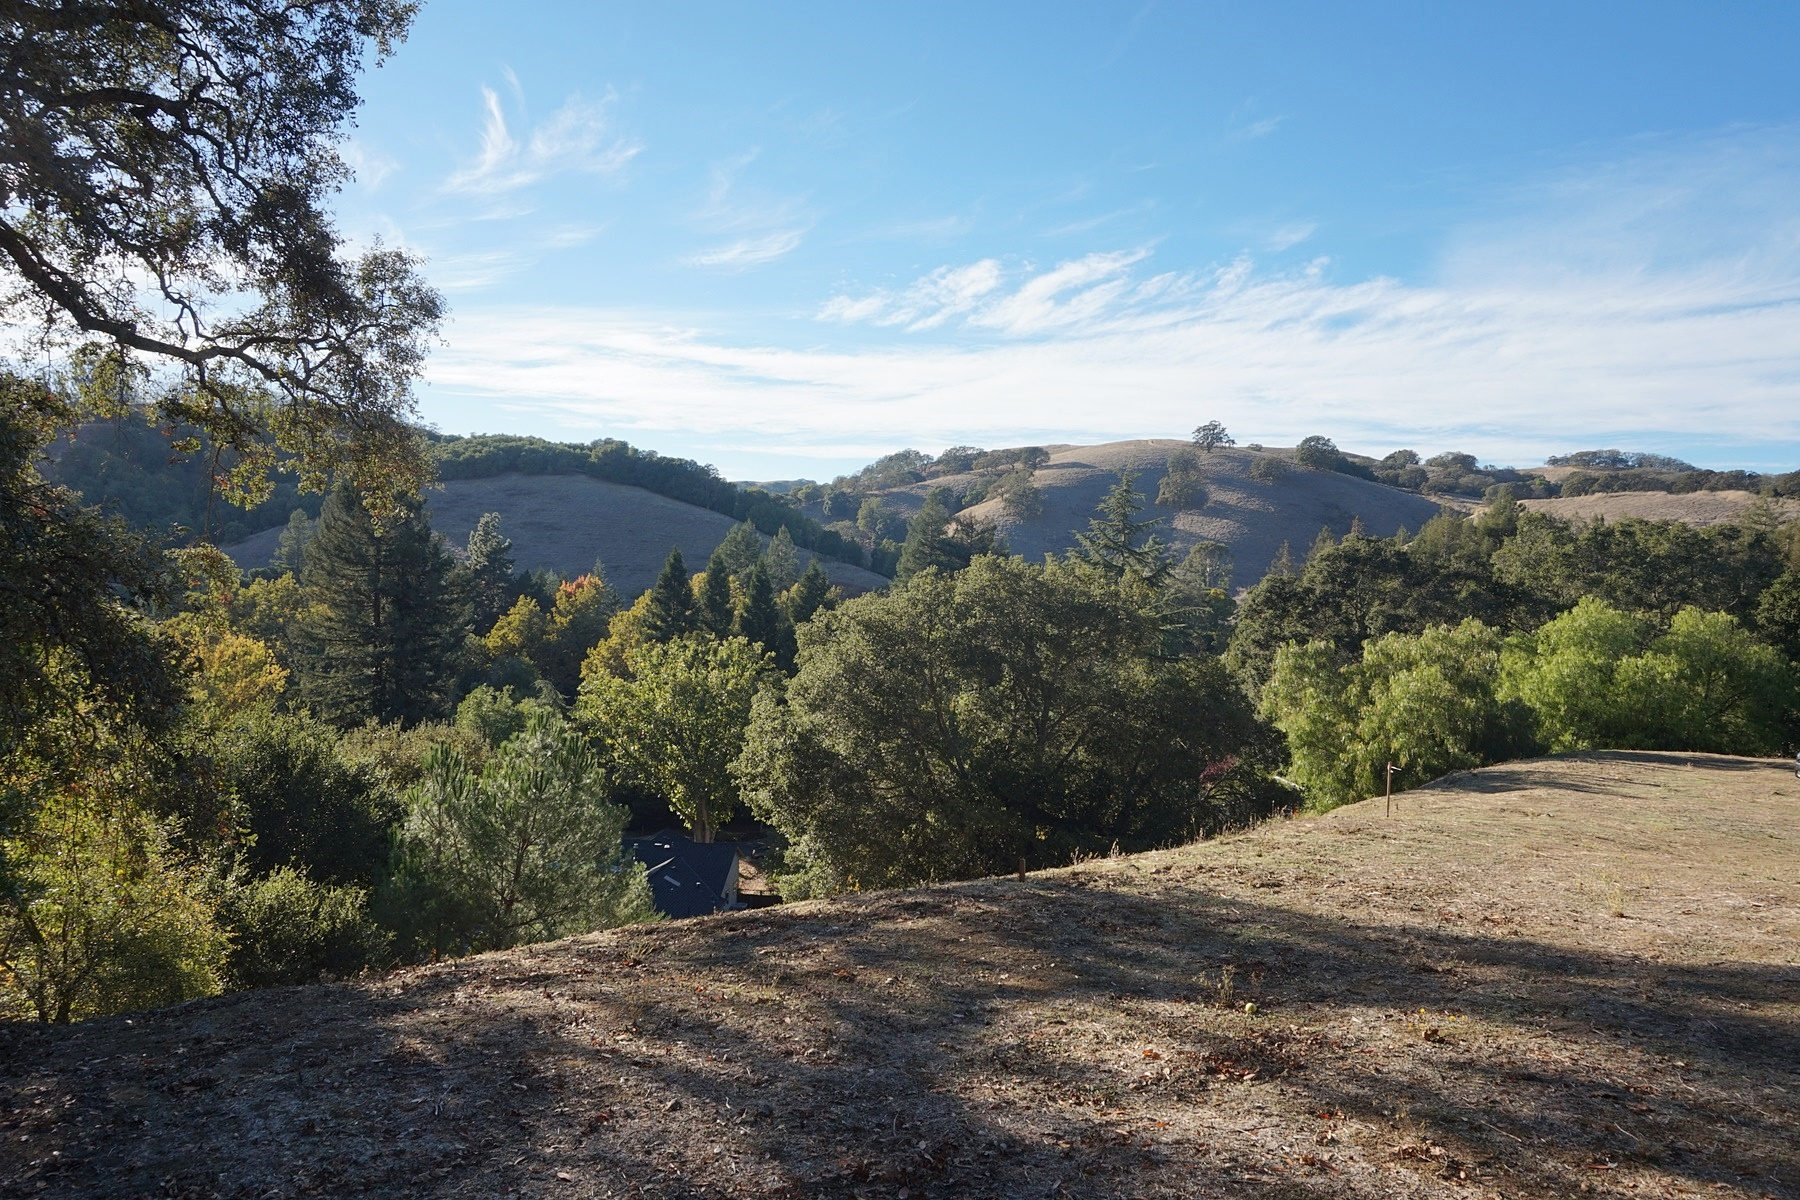 Land for Sale at Private Lot With Whimsical Views 0 Wanda Way Martinez, California 94553 United States